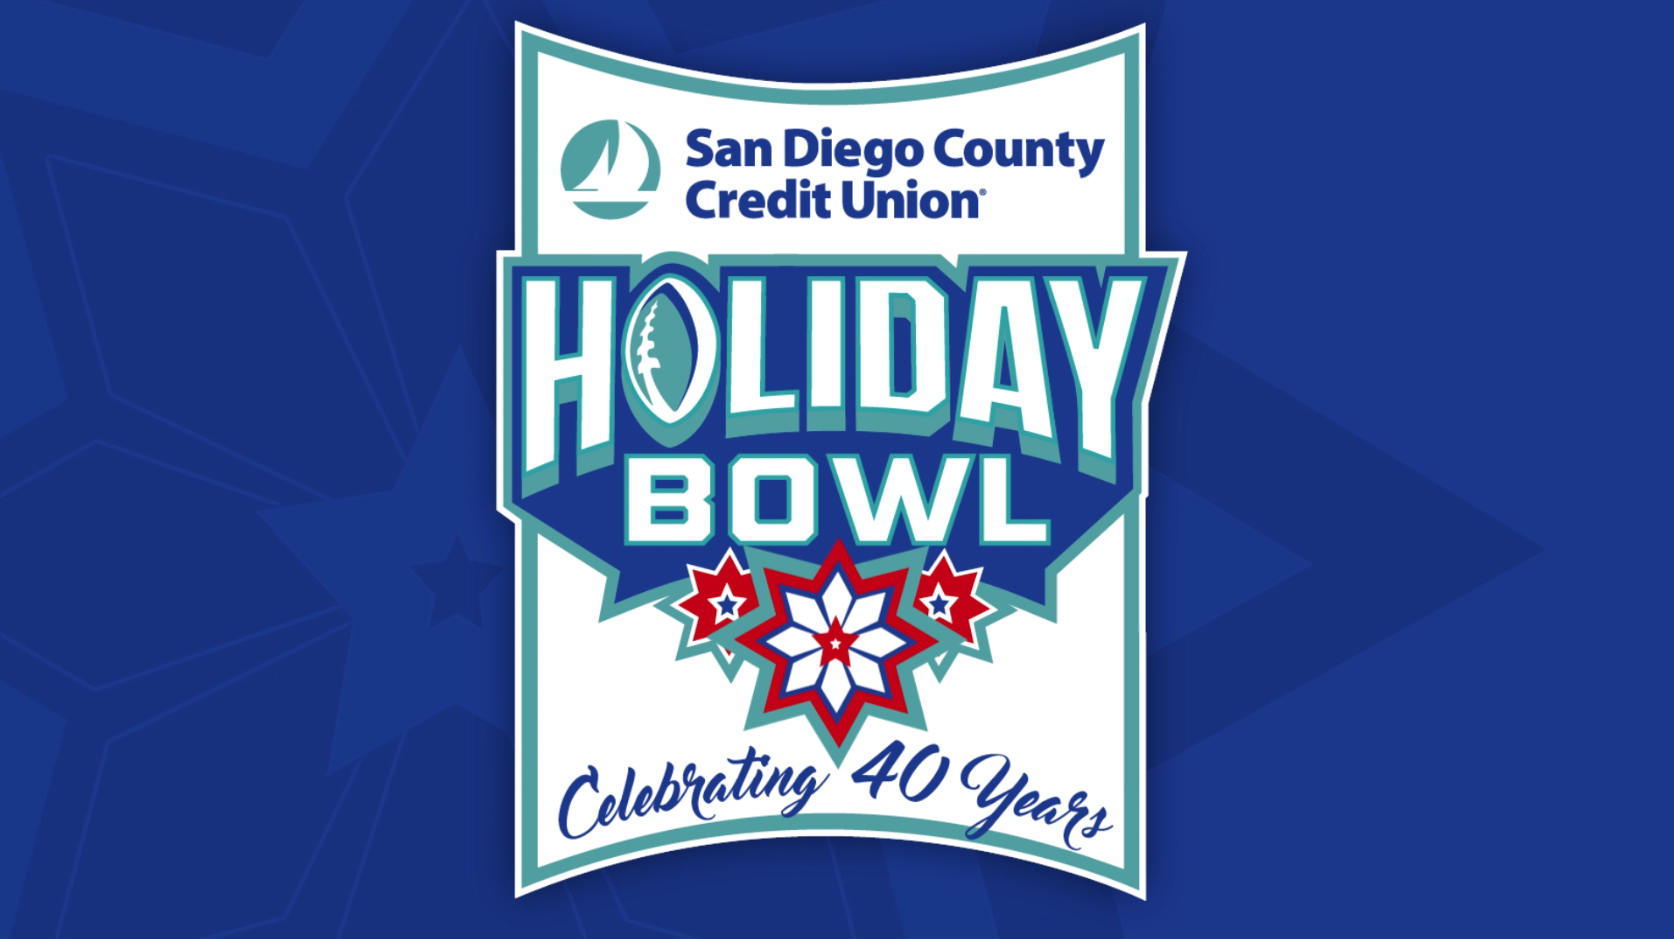 Sd-sp-countdown-1993-holiday-bowl-ohio-state-vs-byu-1204